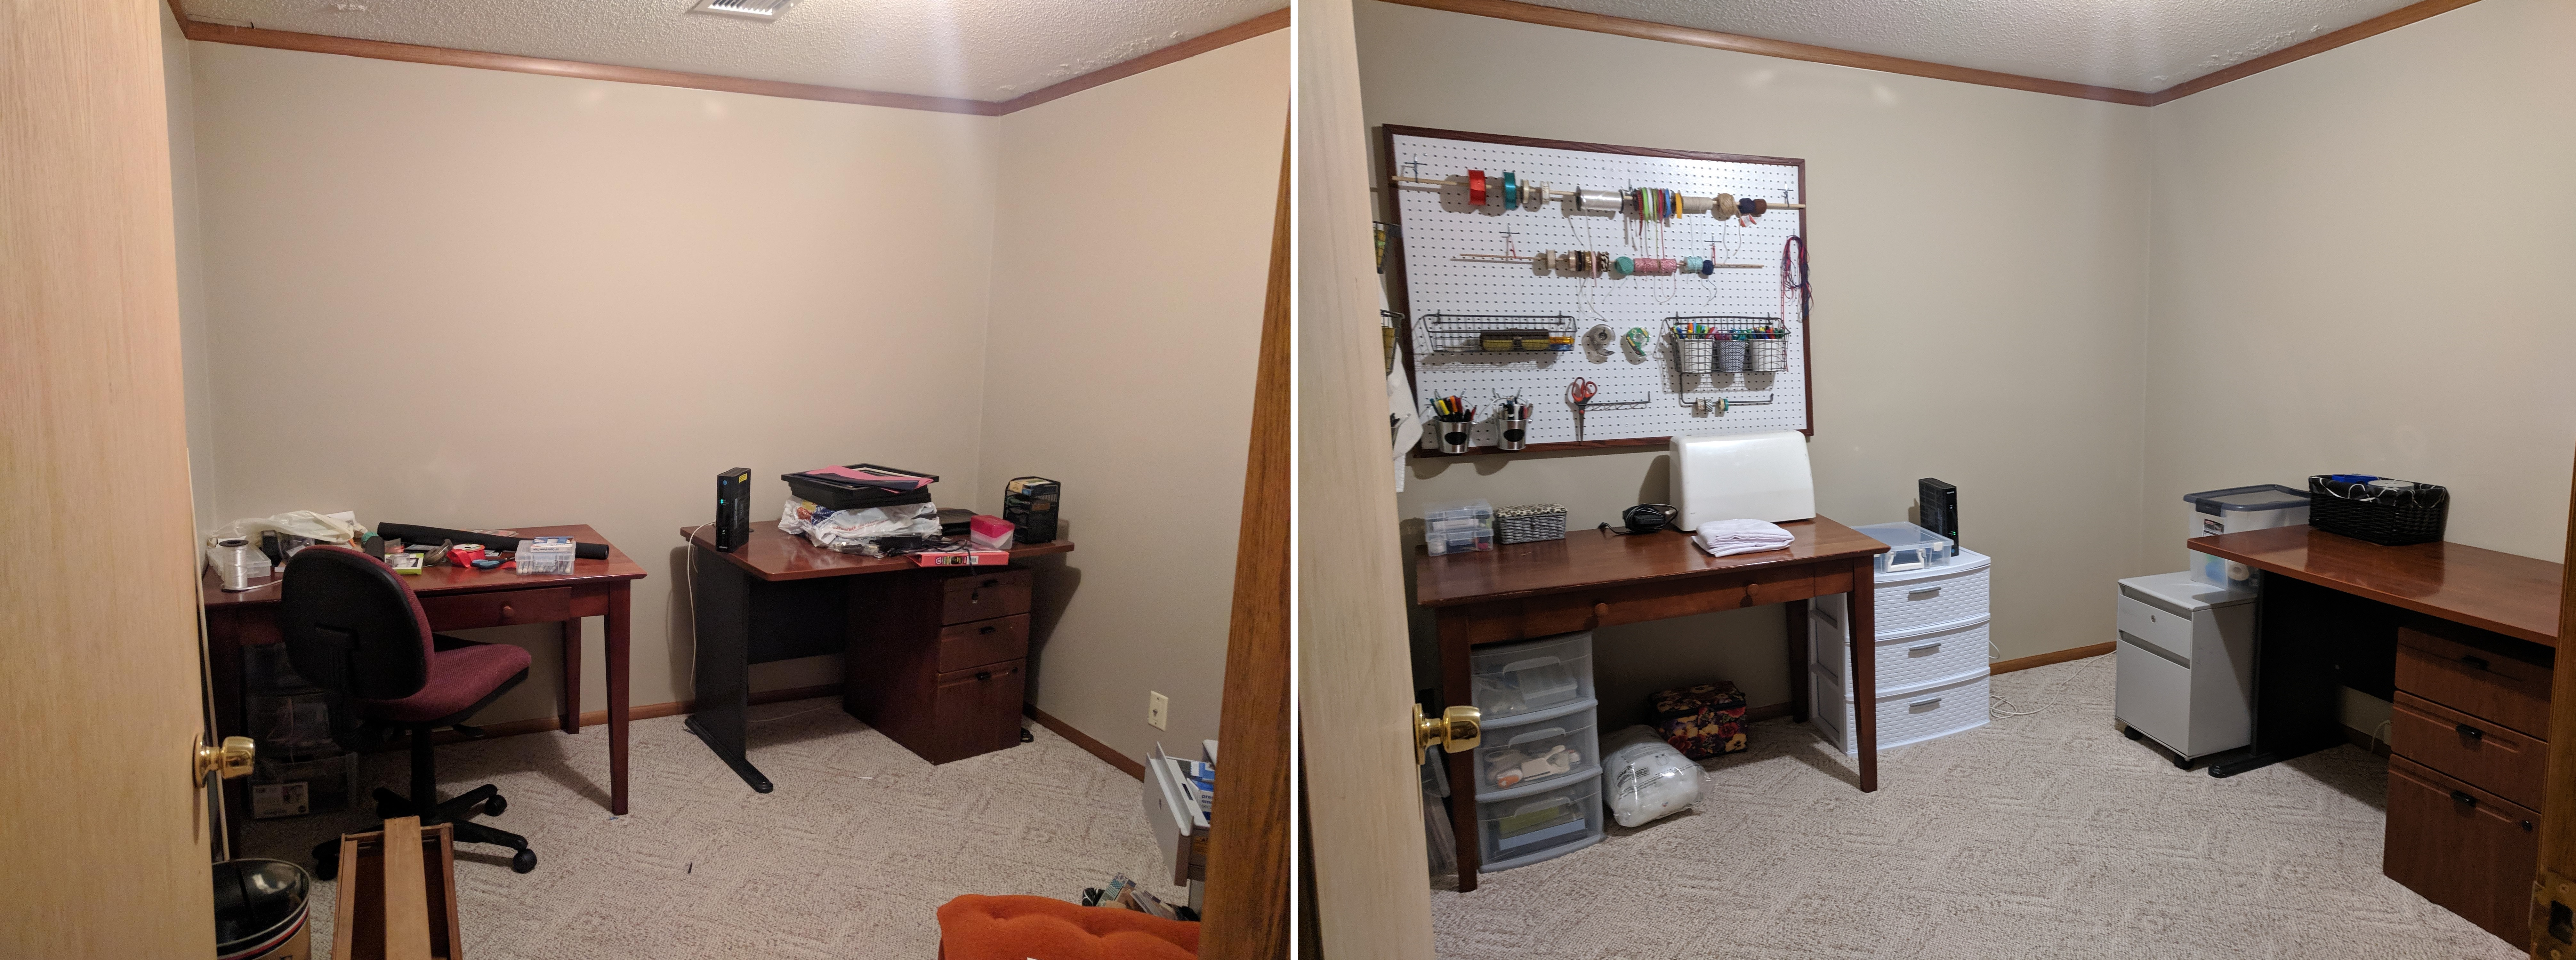 Craft Room Before and After.jpg